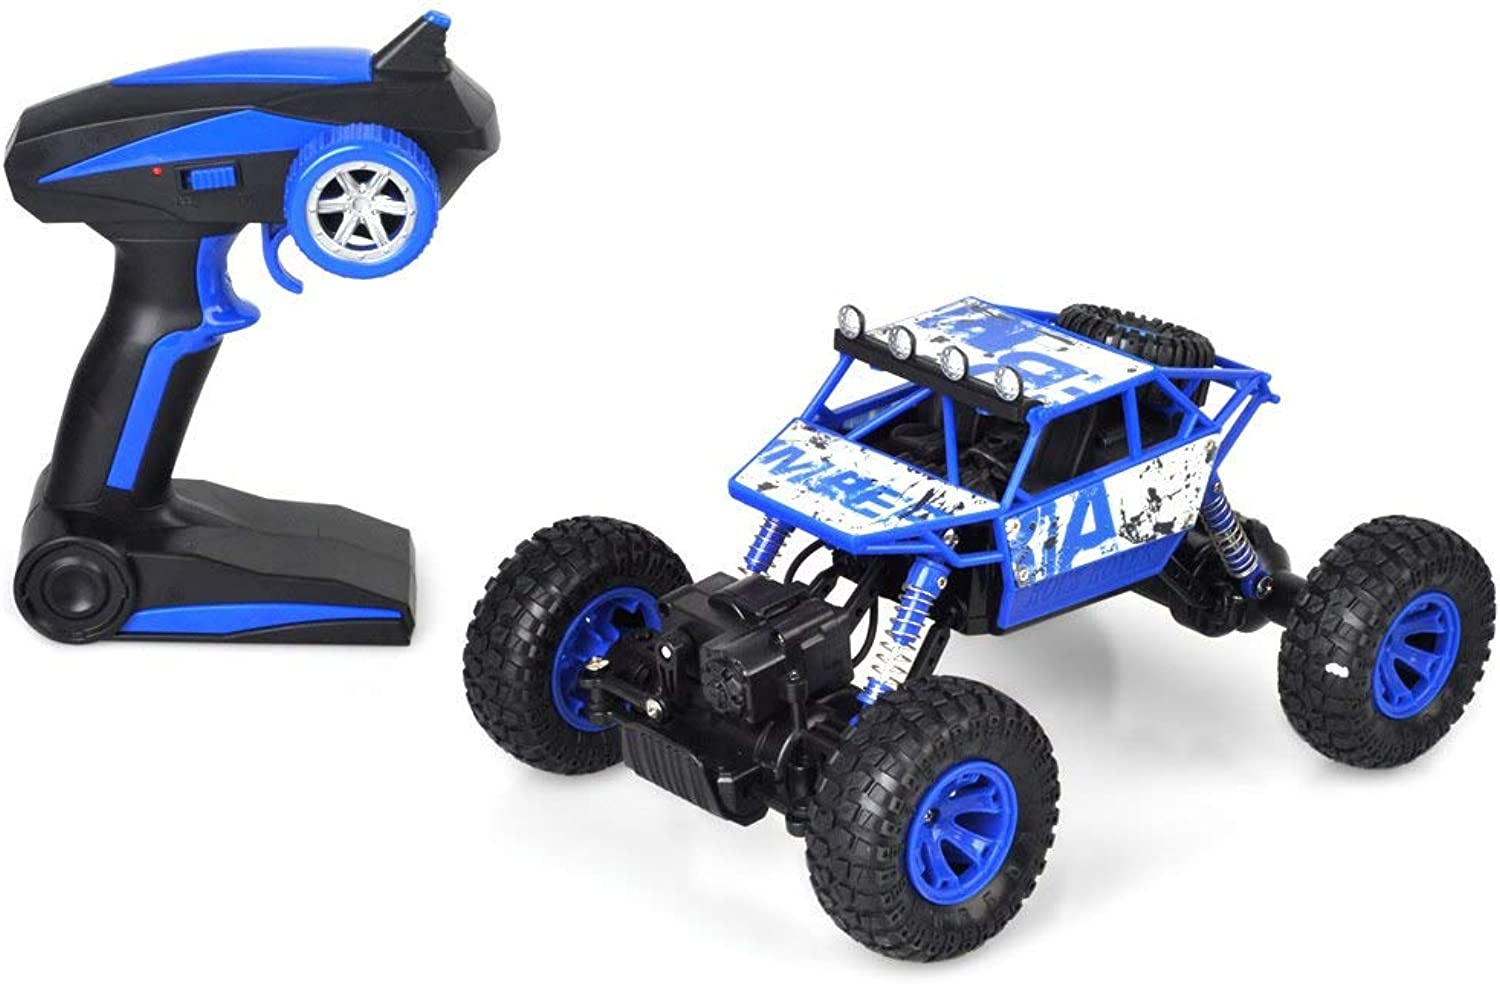 Generic New Arrivel 1 18 Rc Car 4wd Extreme Crawler SUV 2.4ghz Remote Control Mini Off Road Car High Speed Rock Rover Toys for Kids bluee